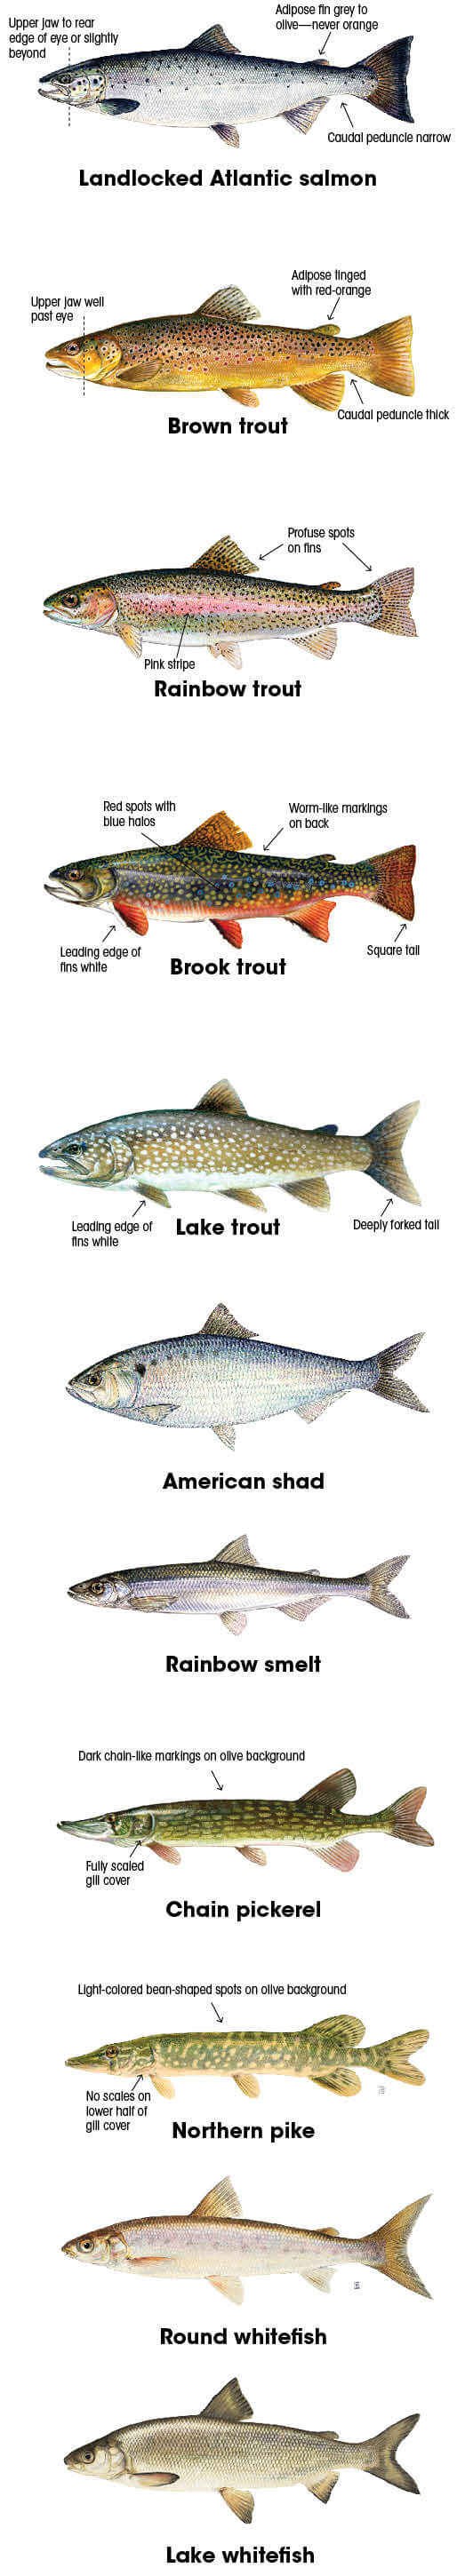 Freshwater fish species in oklahoma best fish 2017 for Michigan fishing regulations 2017